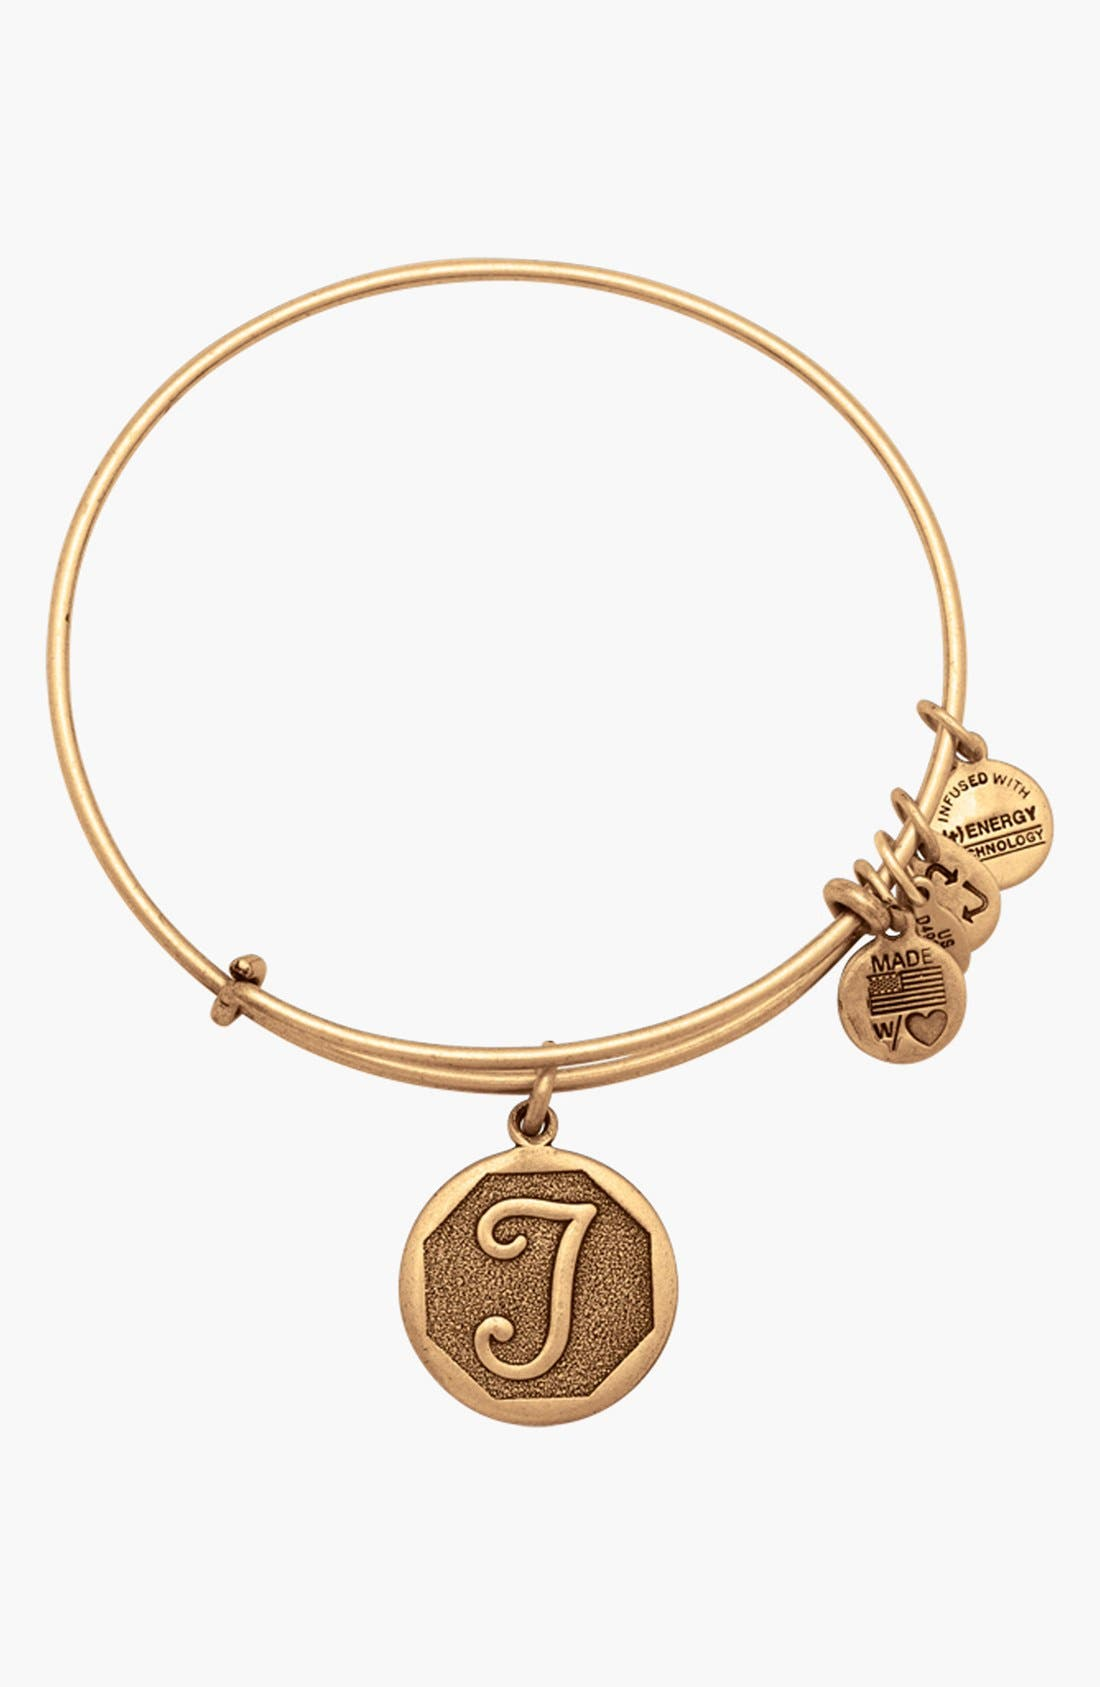 Alex and Ani 'Initial' Adjustable Wire Bangle